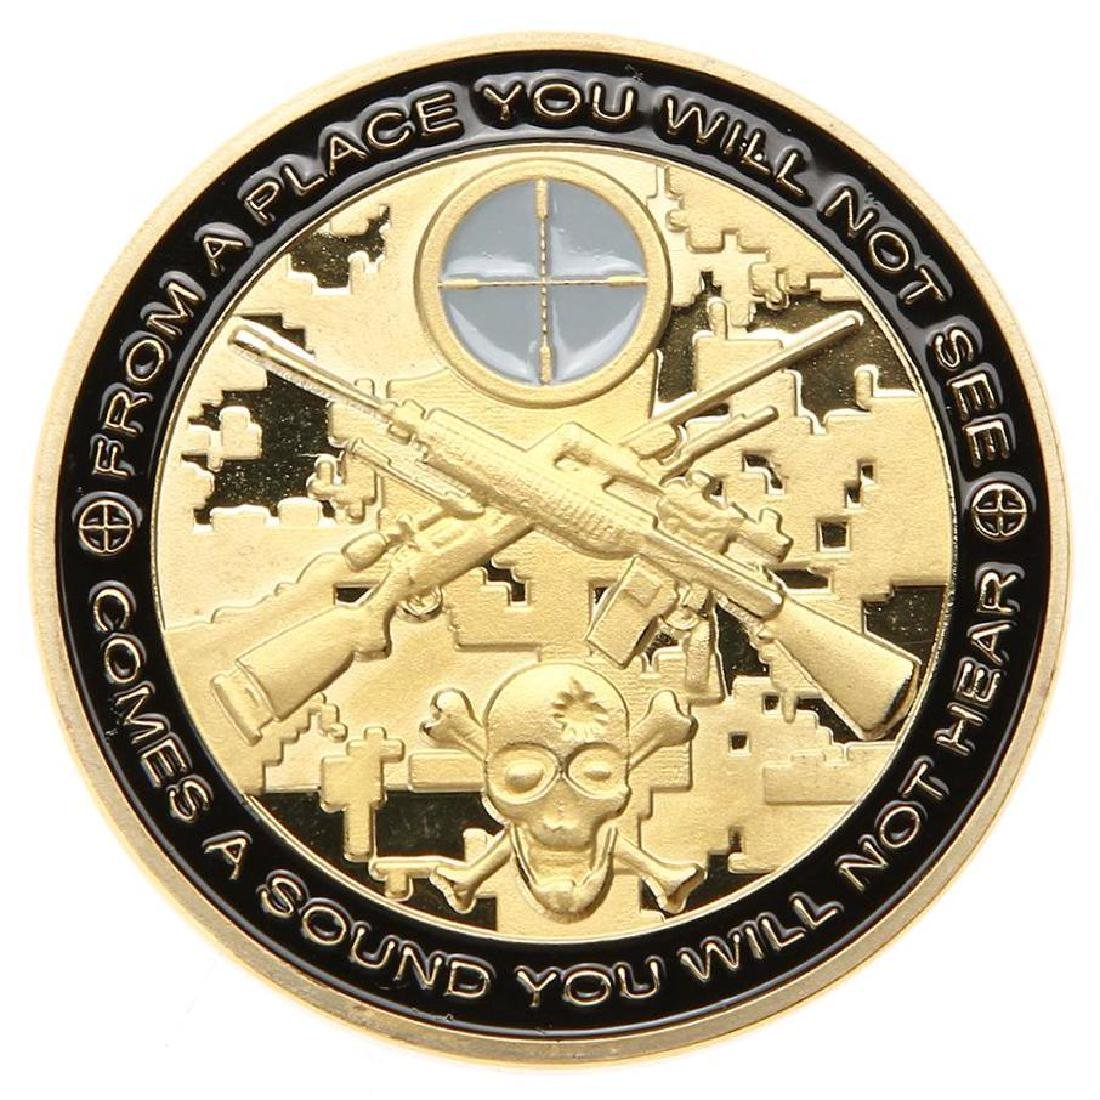 War Sniper Military Challenge Coin